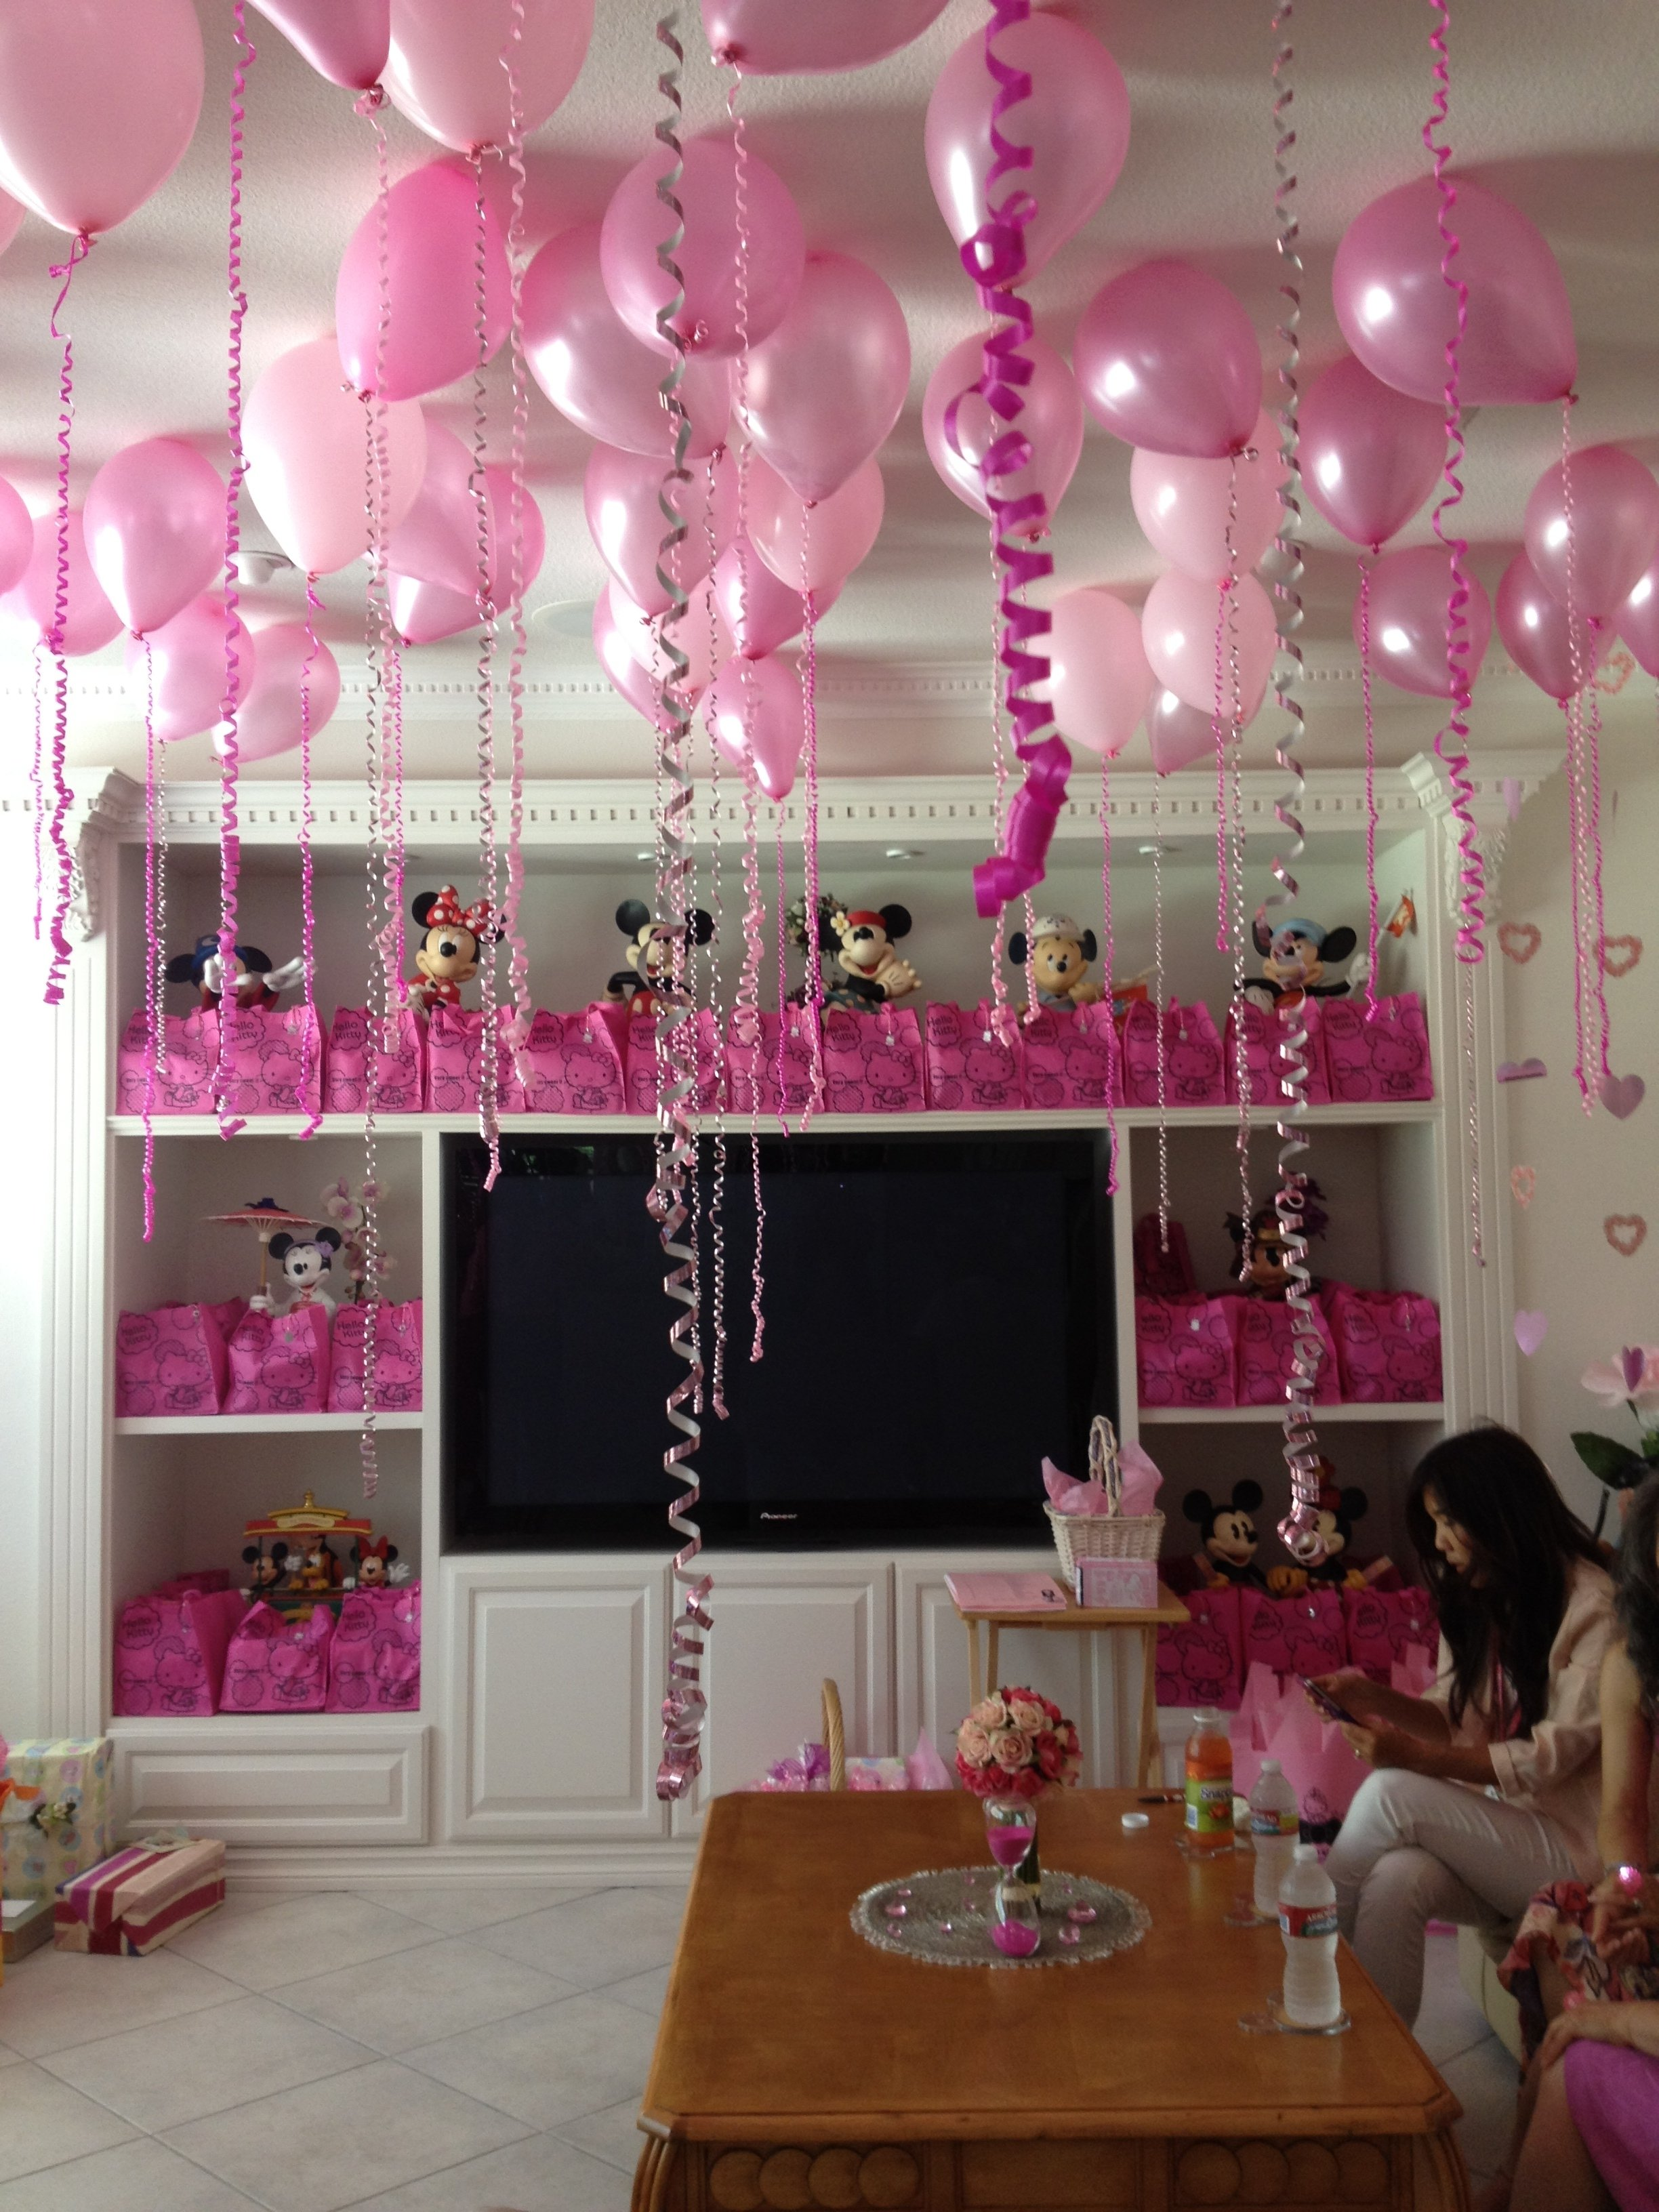 10 Stylish Ideas For Bridal Shower Themes hello kitty themed bridal shower 1 2020